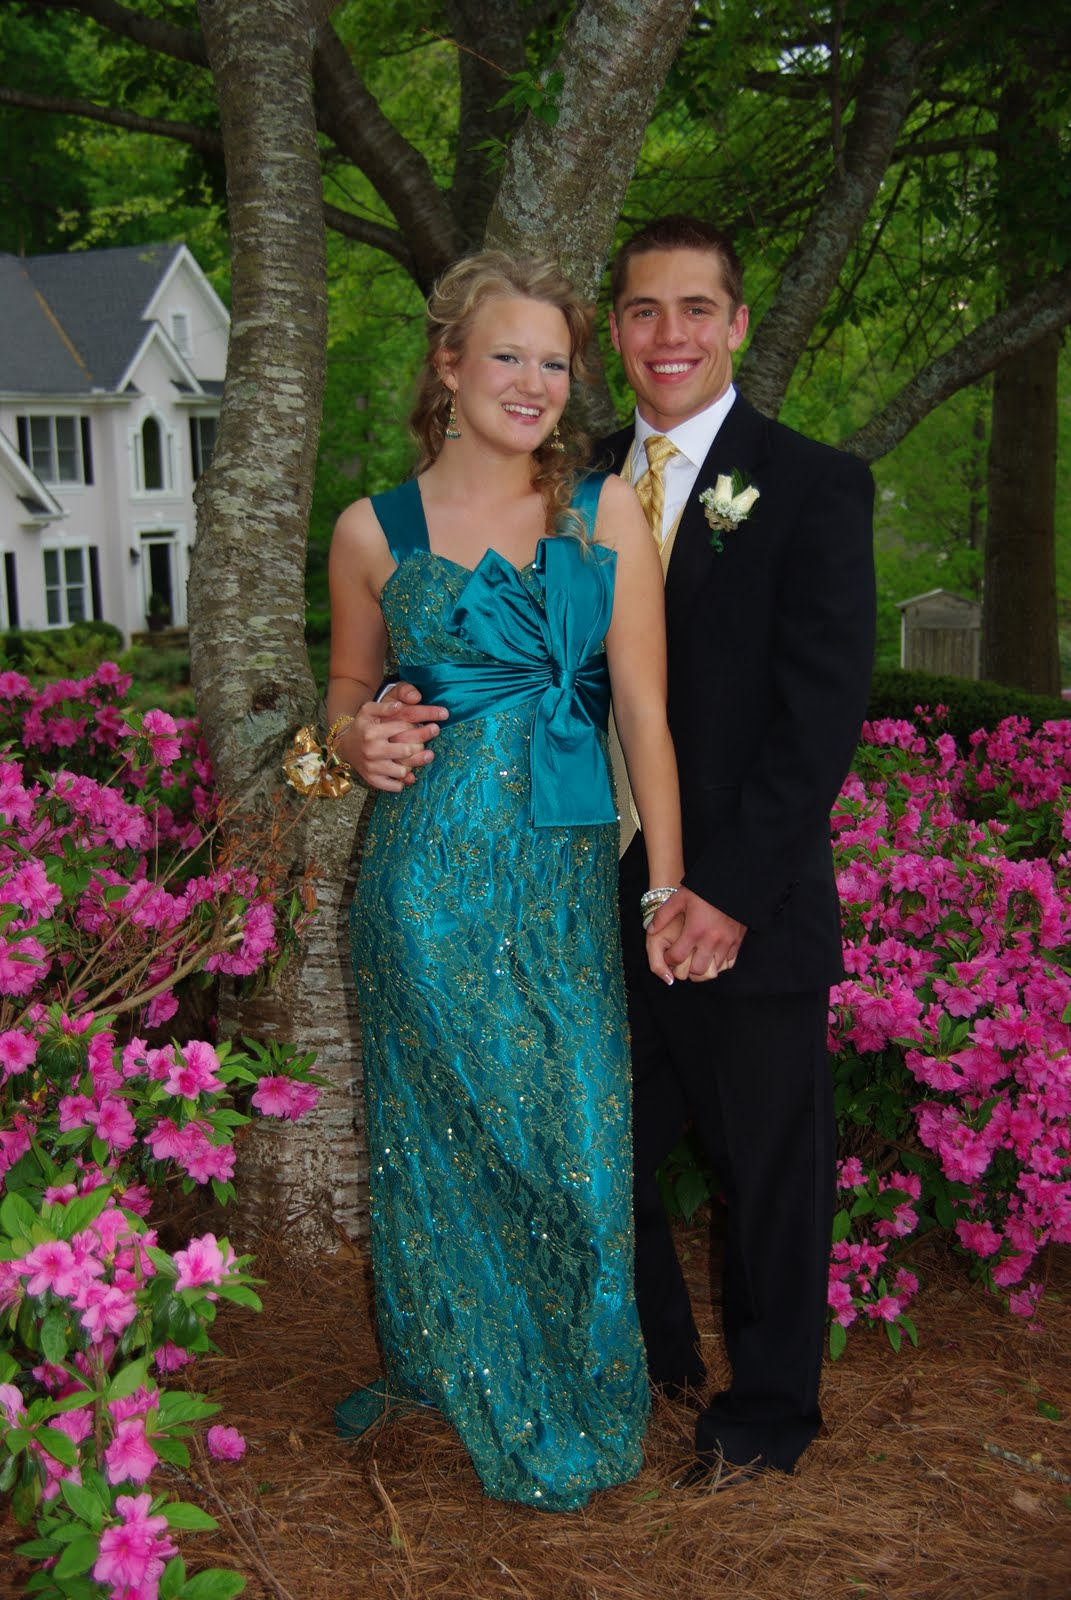 Delighted Crazy Prom Tuxedos Pictures Inspiration - Wedding Ideas ...